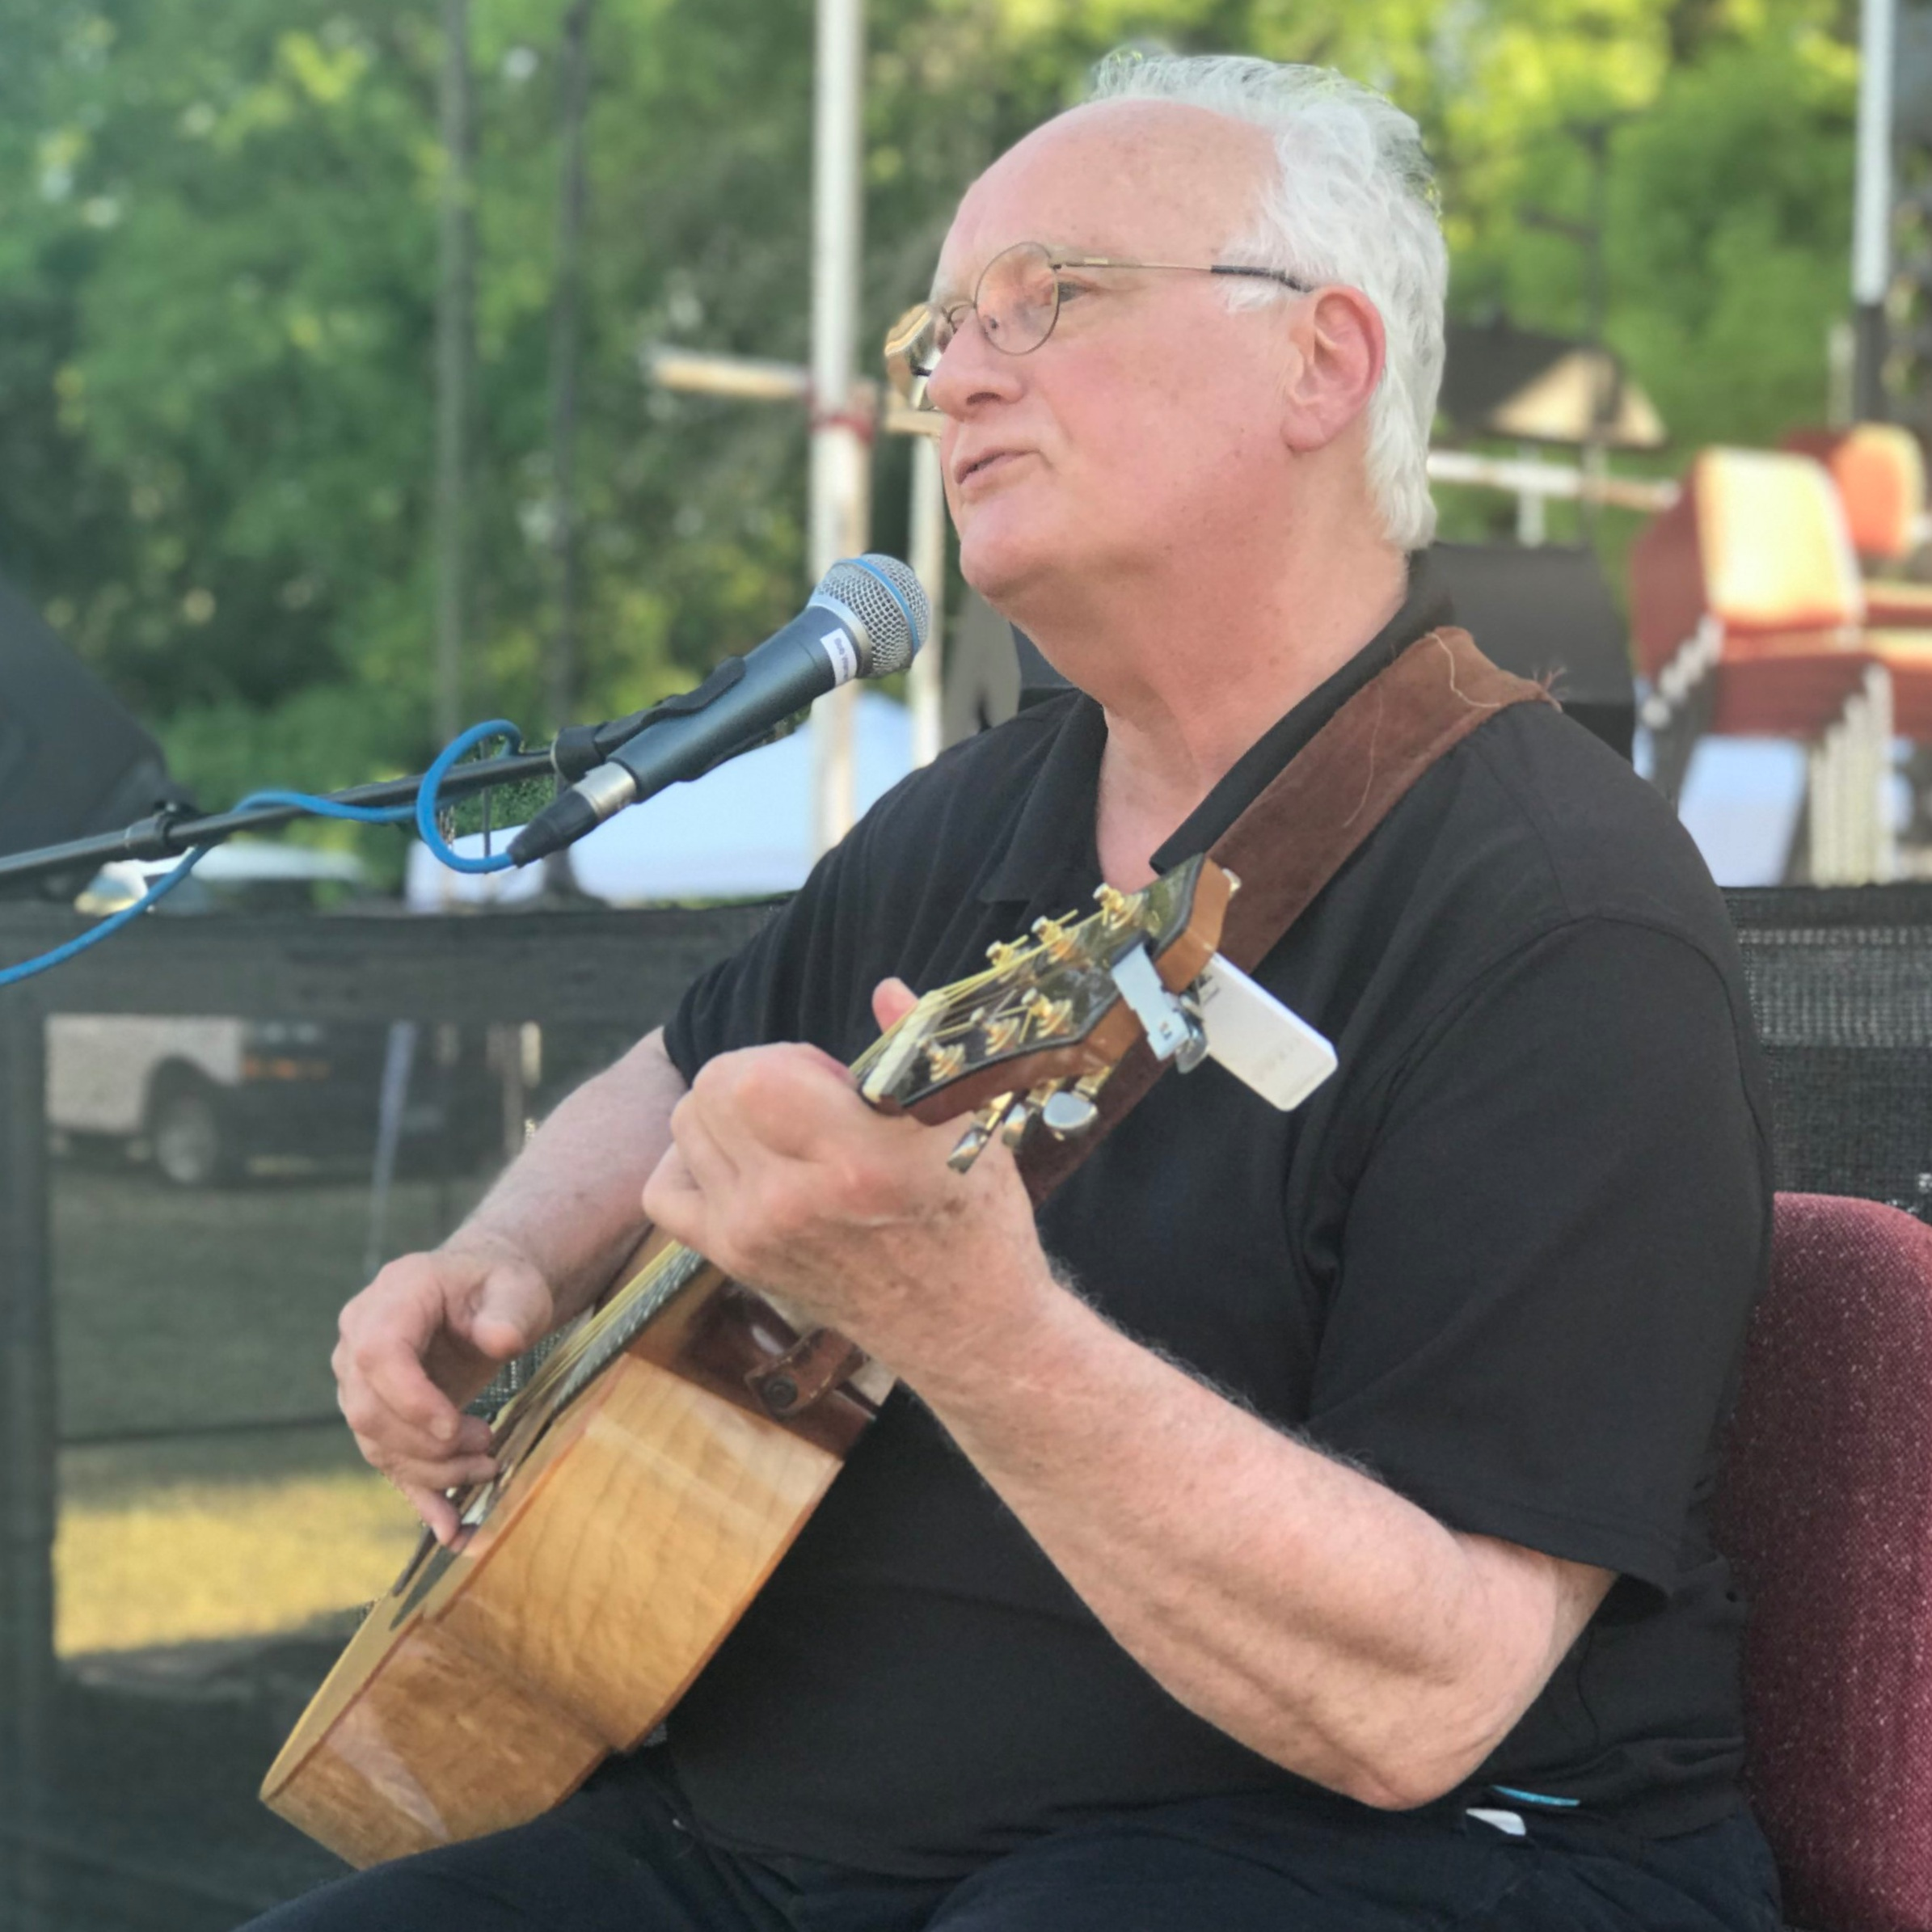 Local folk singer,  Bob Warren  stopped by and performed some old time folk favorites.